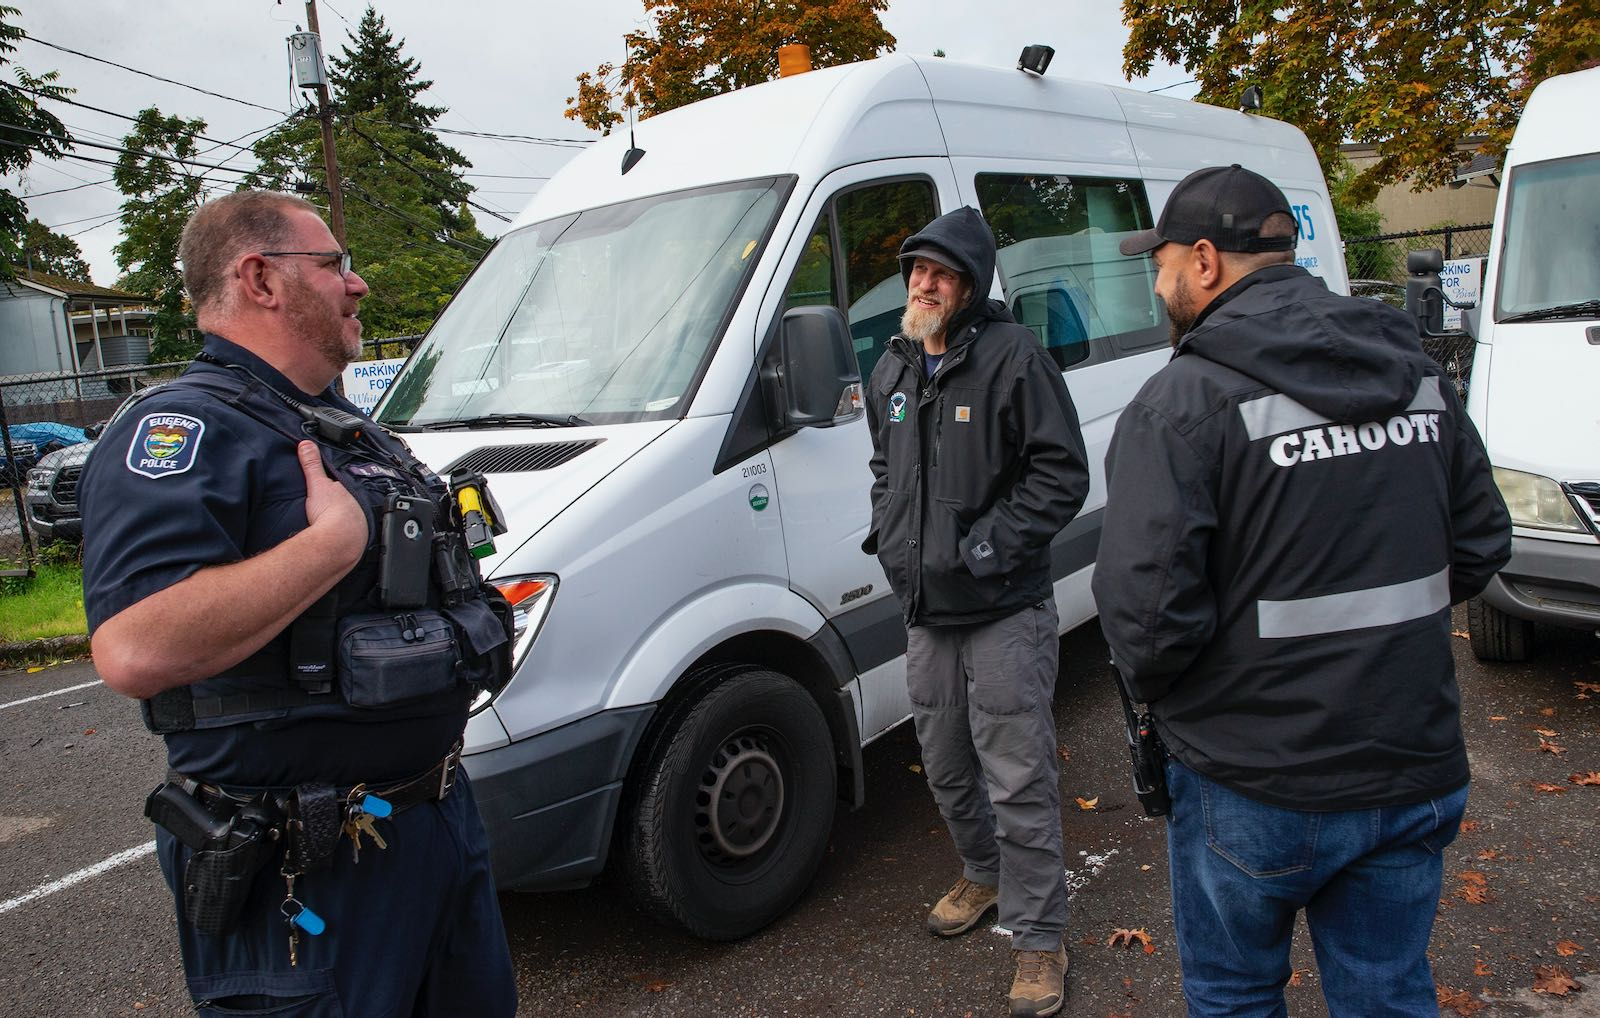 Police officer talking with crisis response staff, Eugene, Oregon